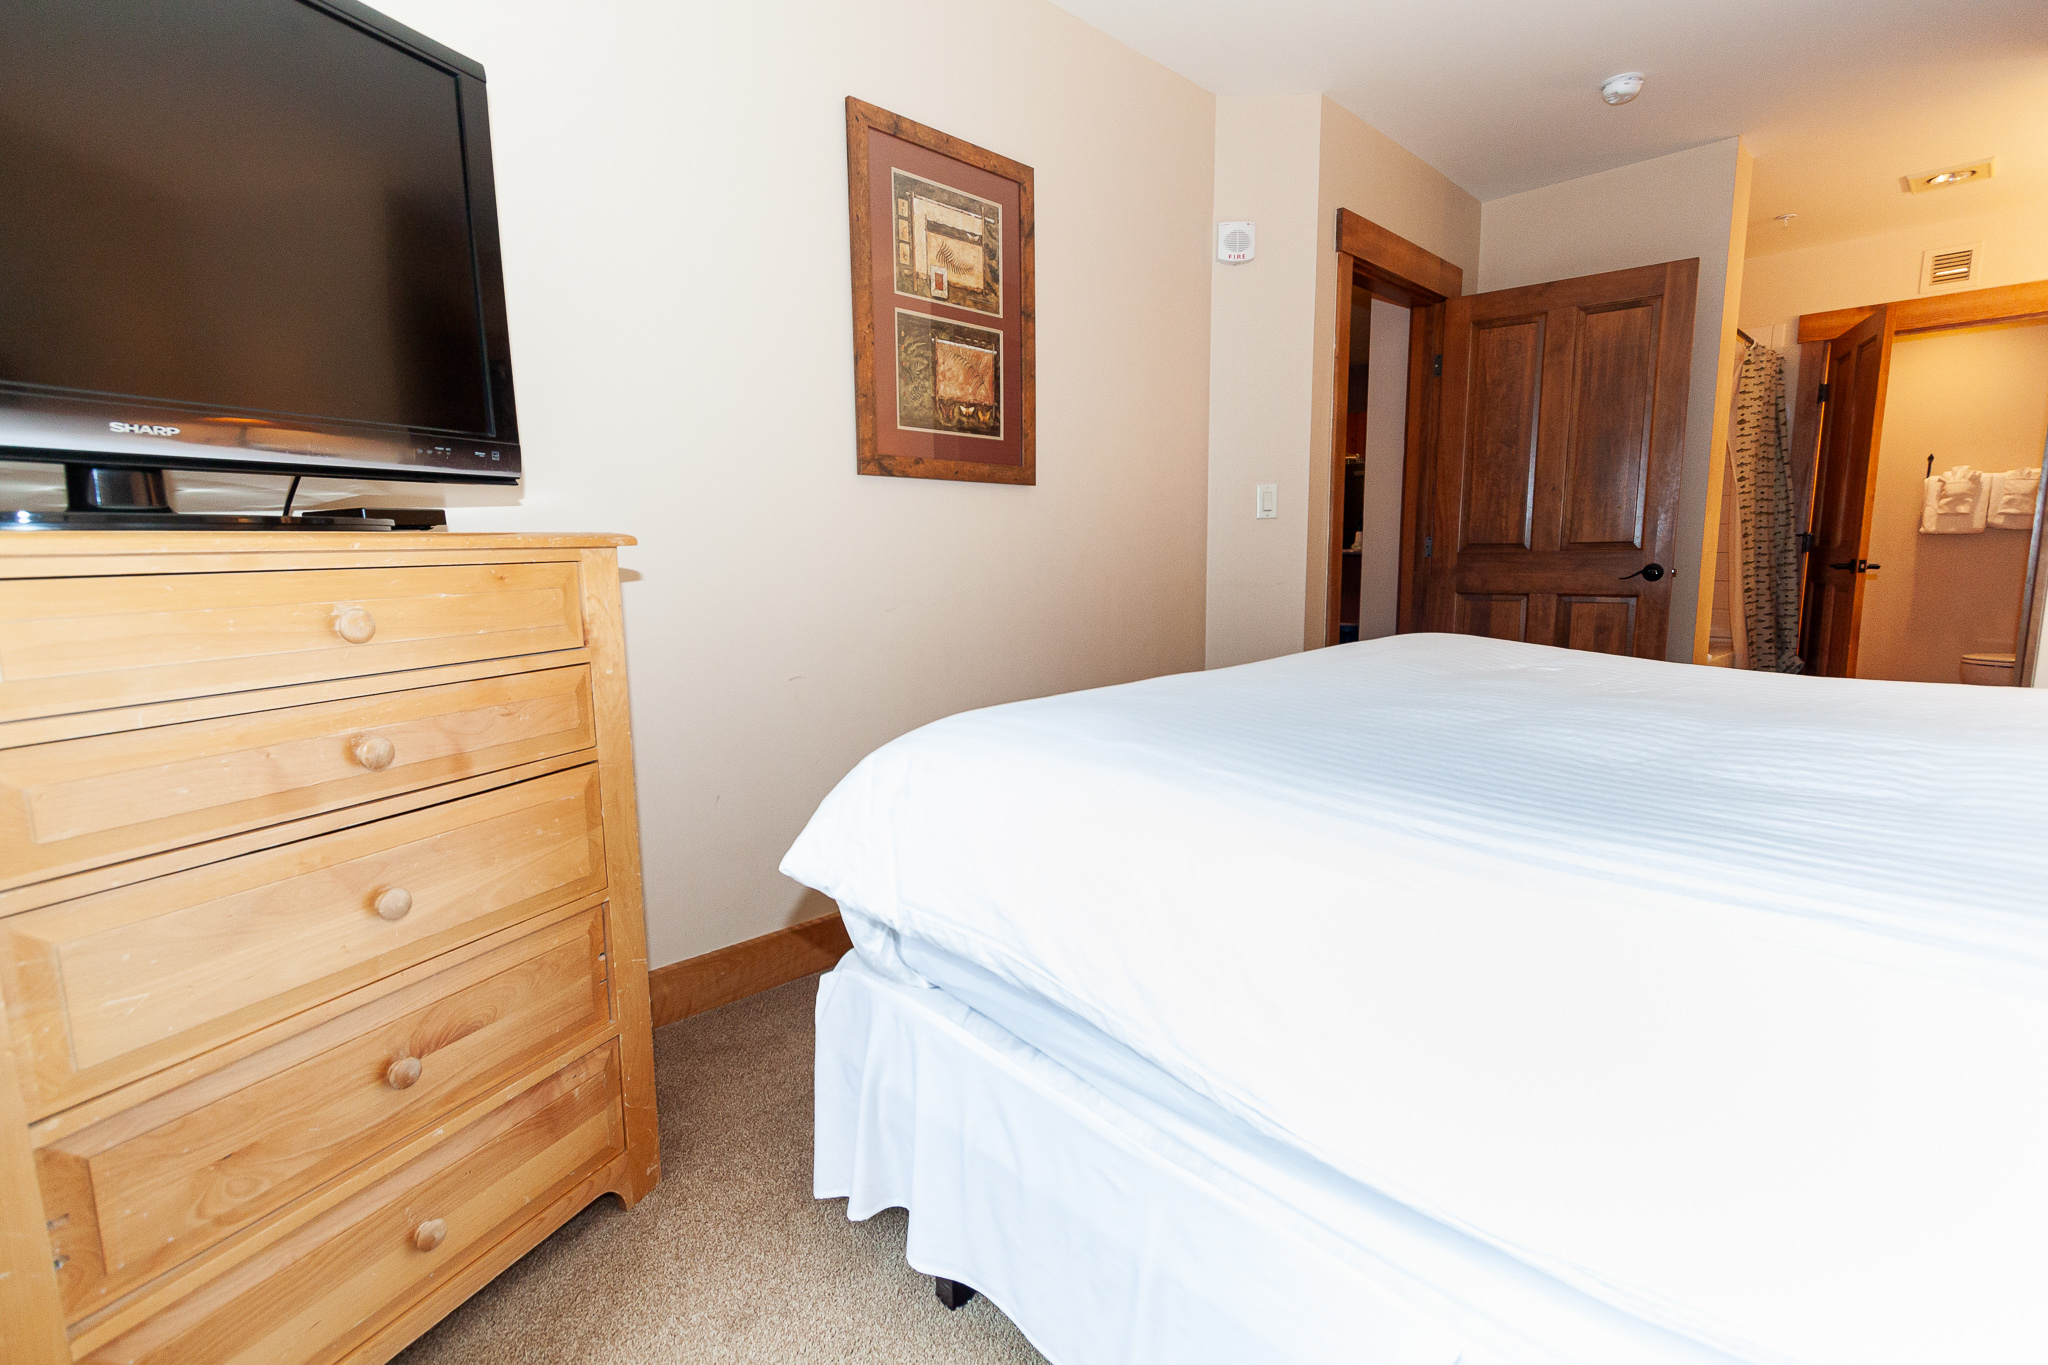 The master bedroom features a king-sized bed, flat screen TV and its own private bathroom.